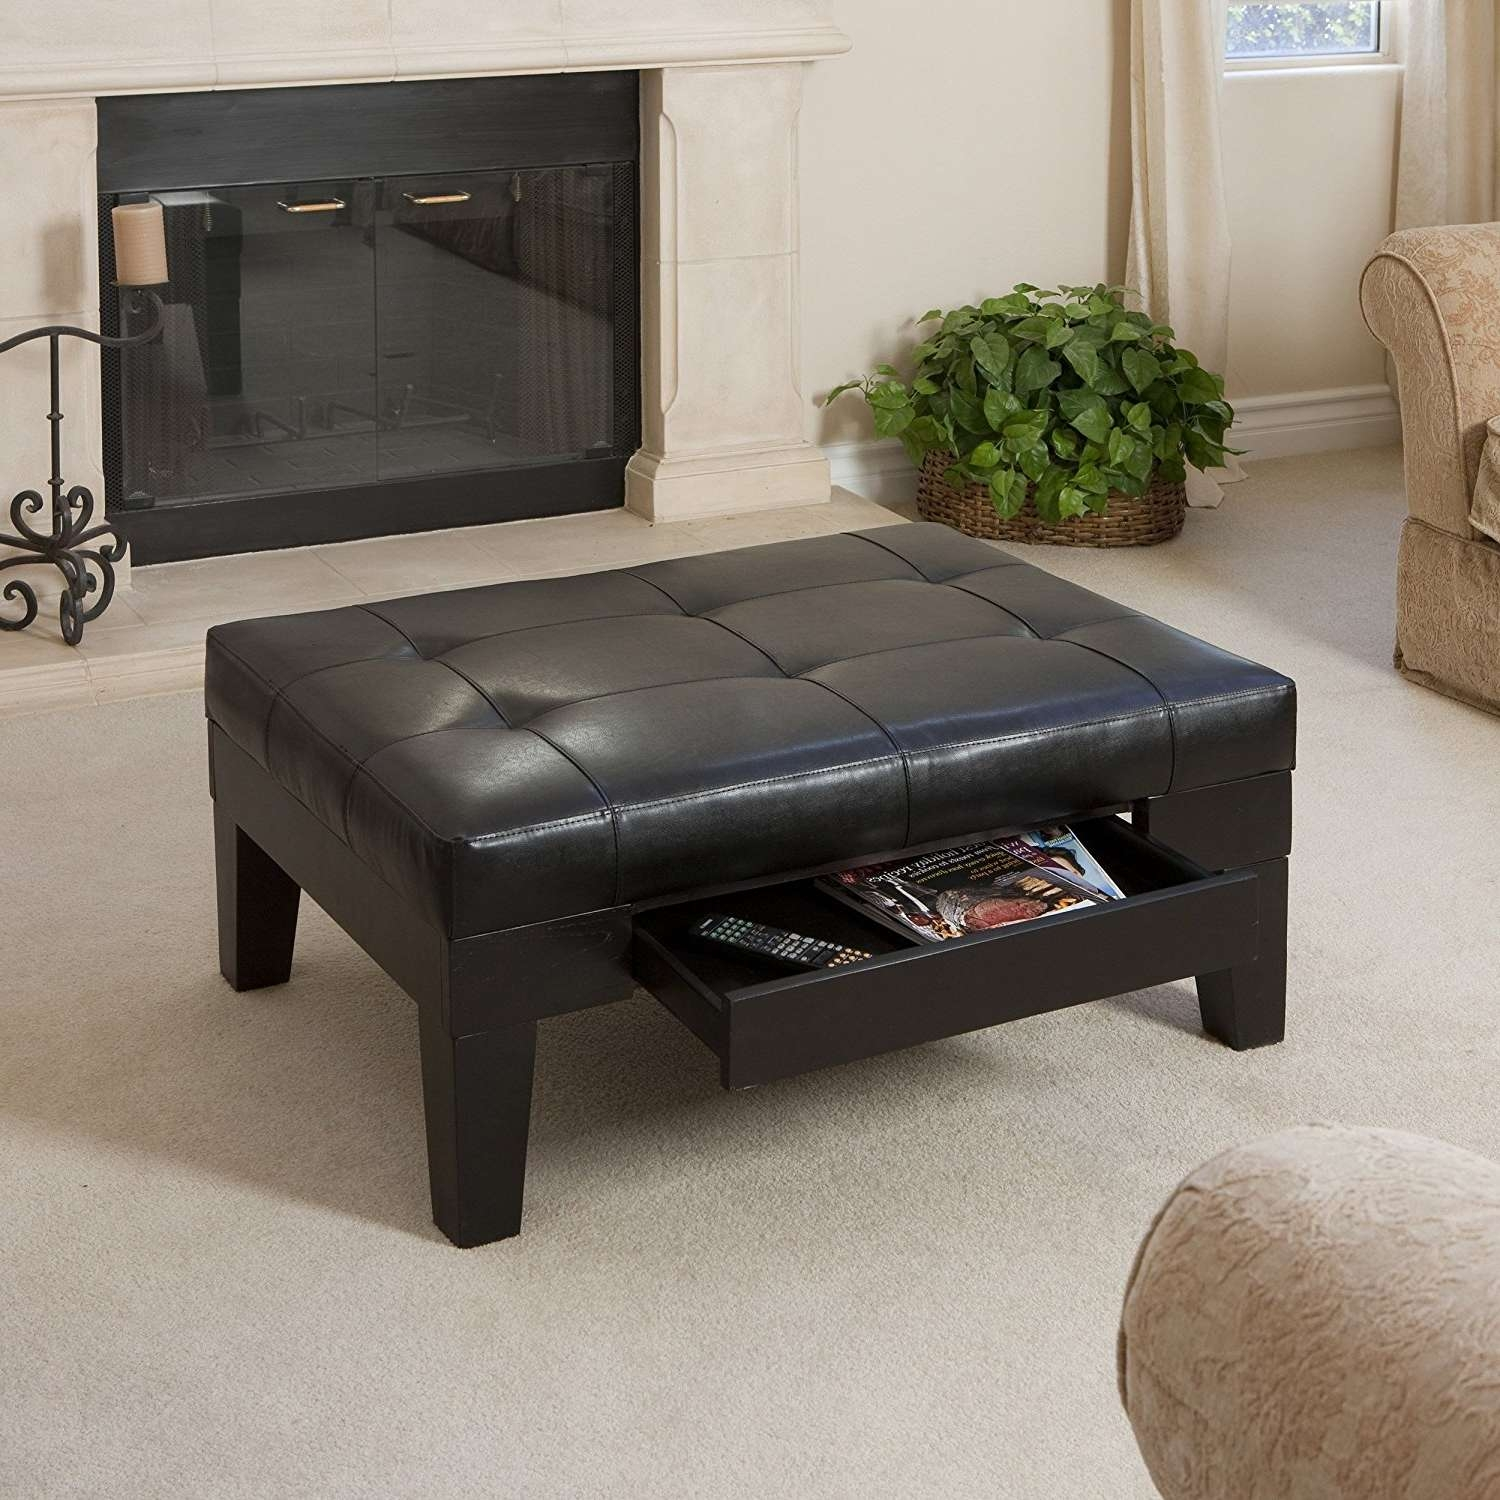 Large Footstool Coffee Table Tags : Fabulous Leather Storage In Latest Large Coffee Table With Storage (View 18 of 20)